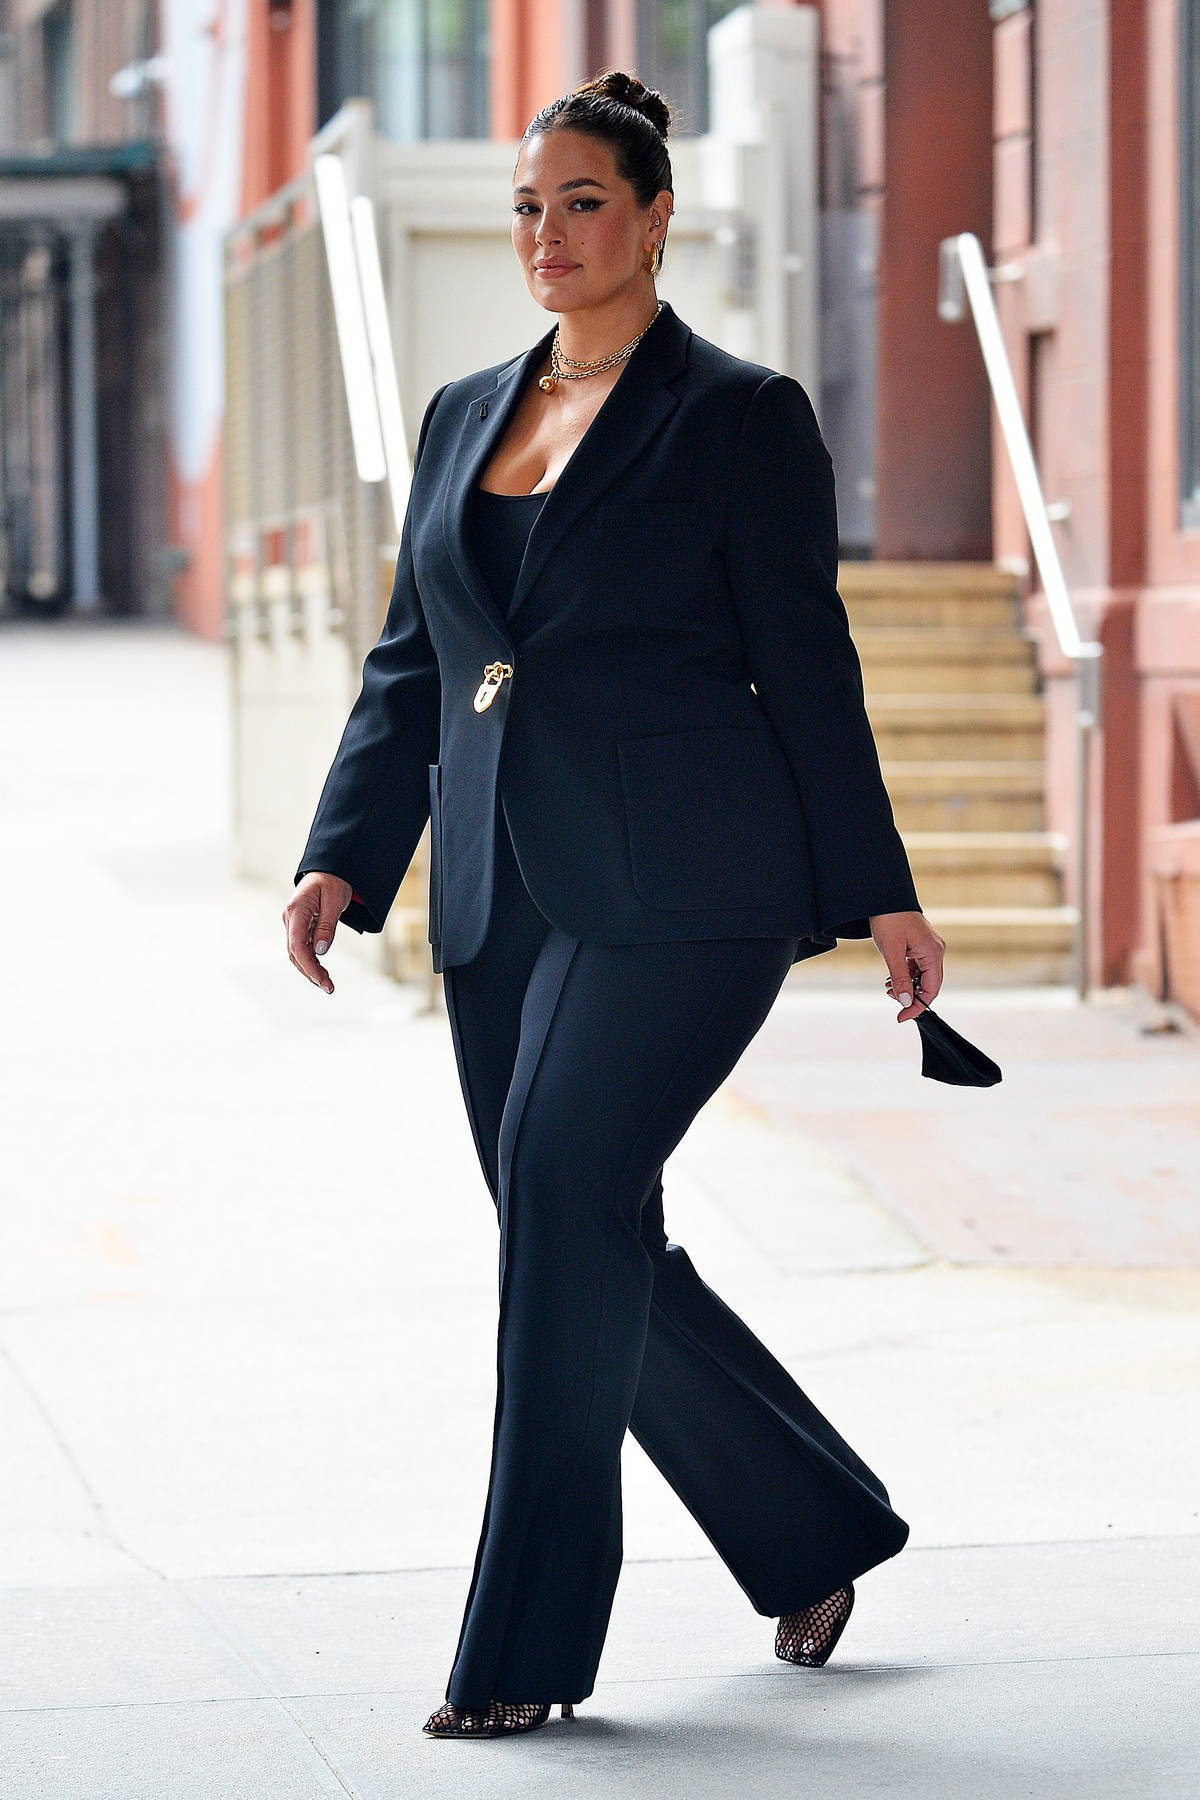 Ashley Graham looks sharp in a black pantsuit as she steps out in New York City